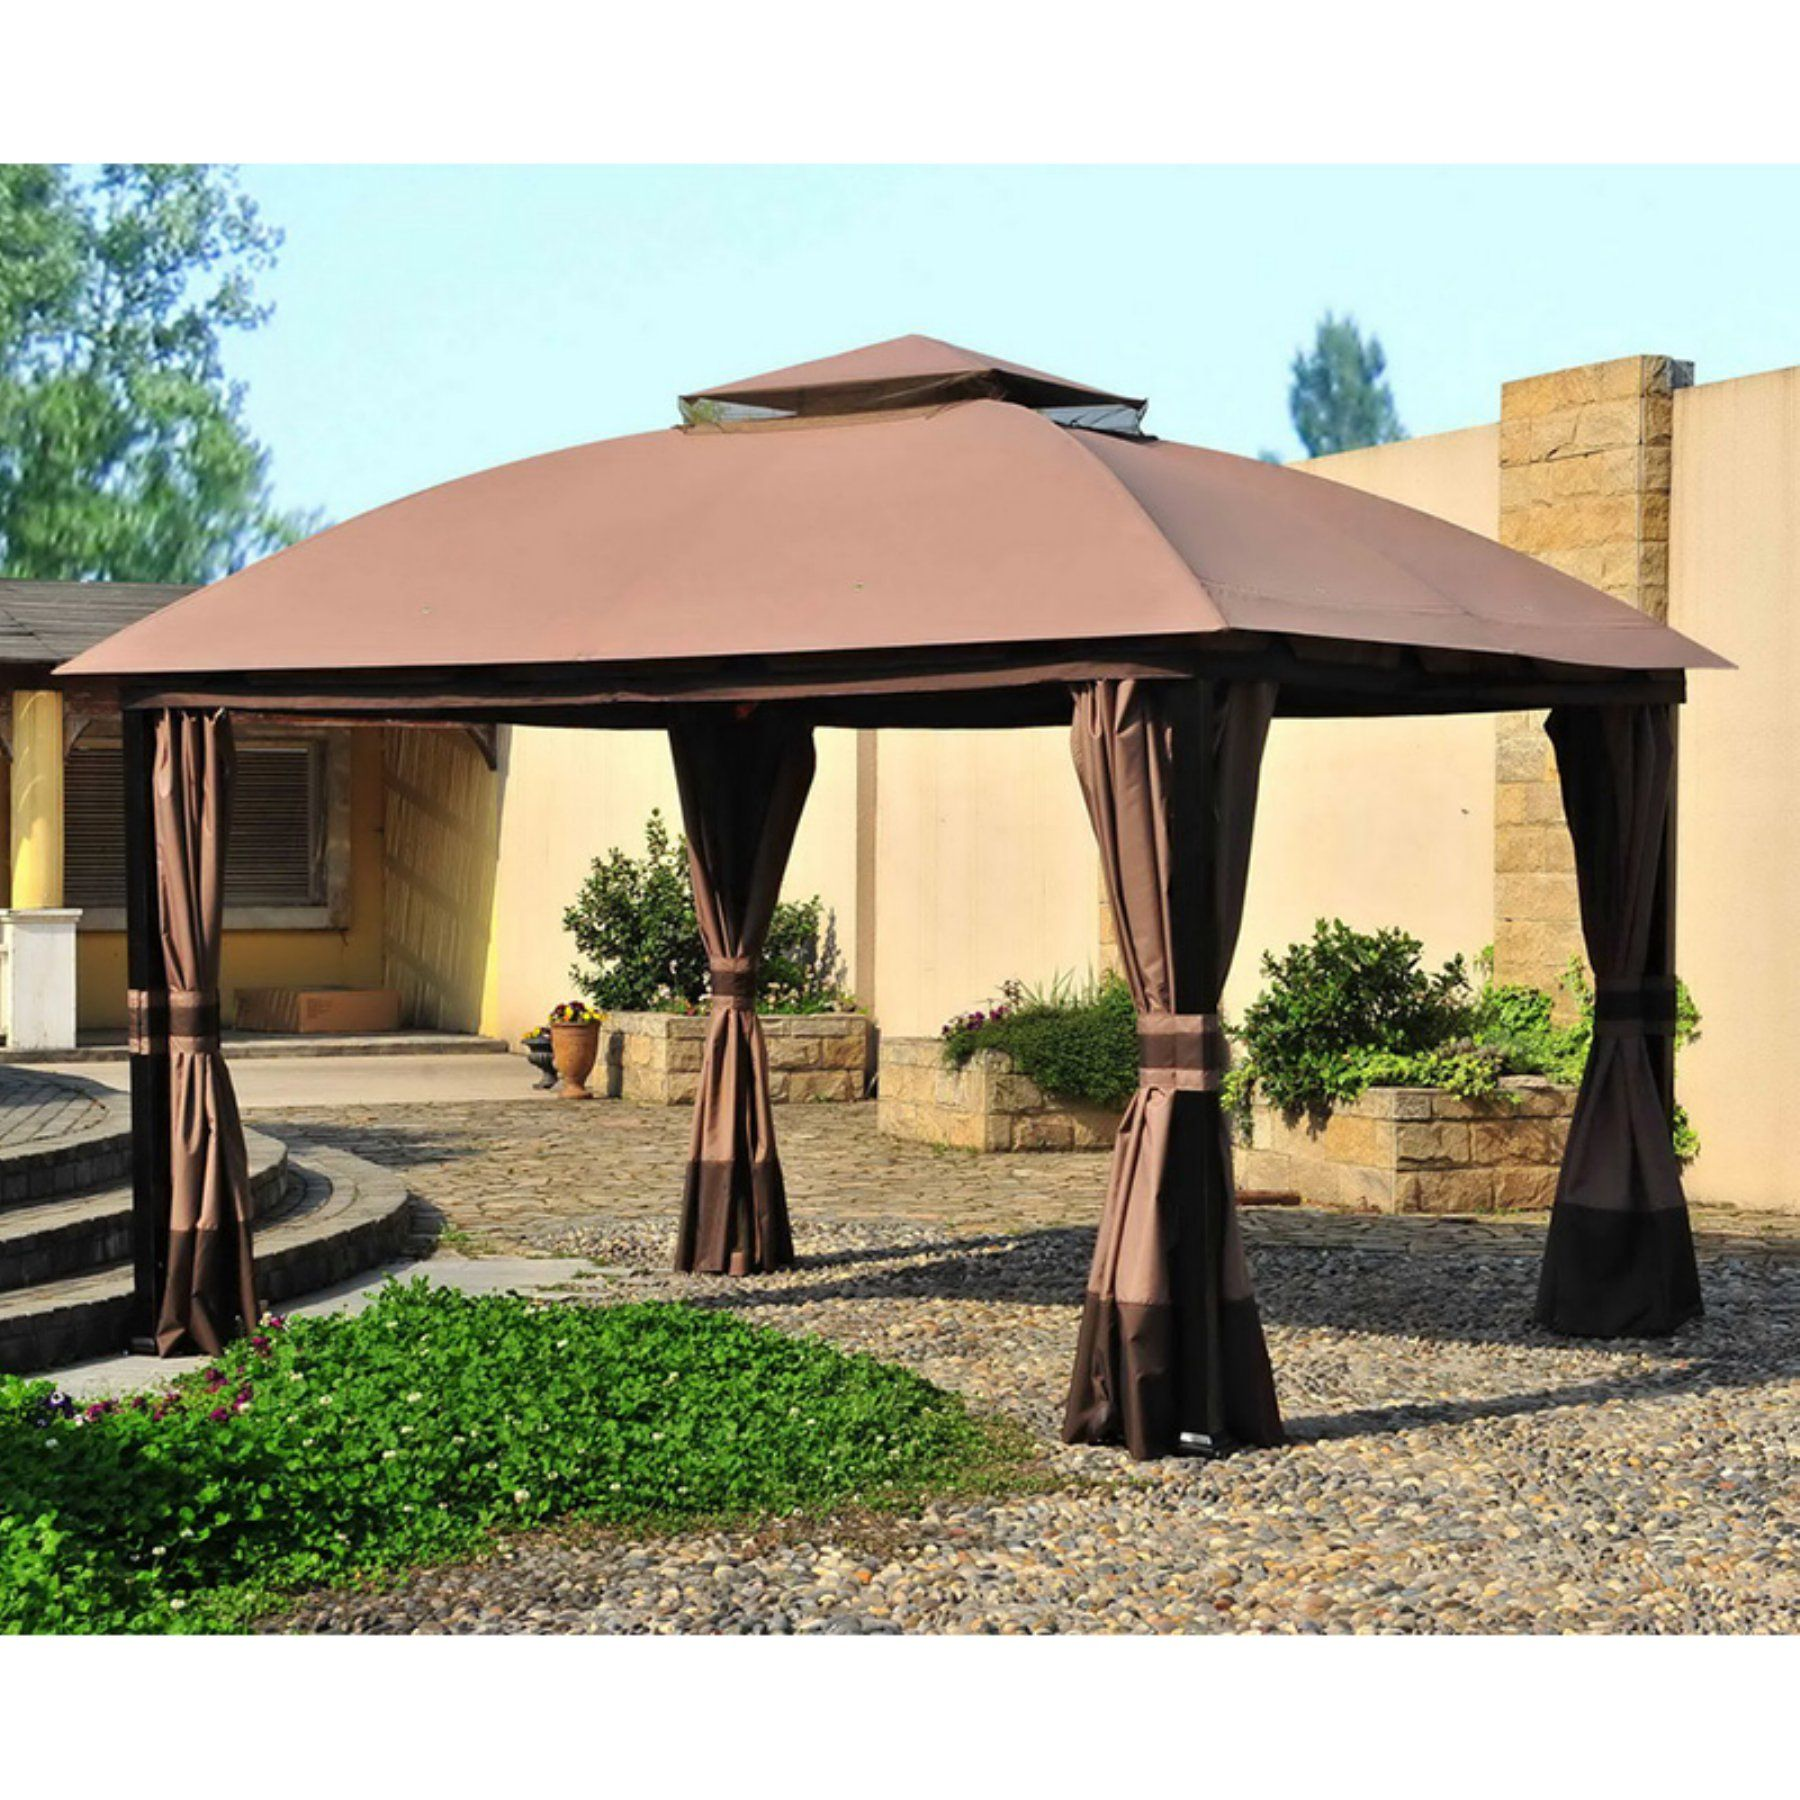 Replacement canopy cover for l gz215pst a deluxe south hampton gazebo ginger snap dark brown 110109402